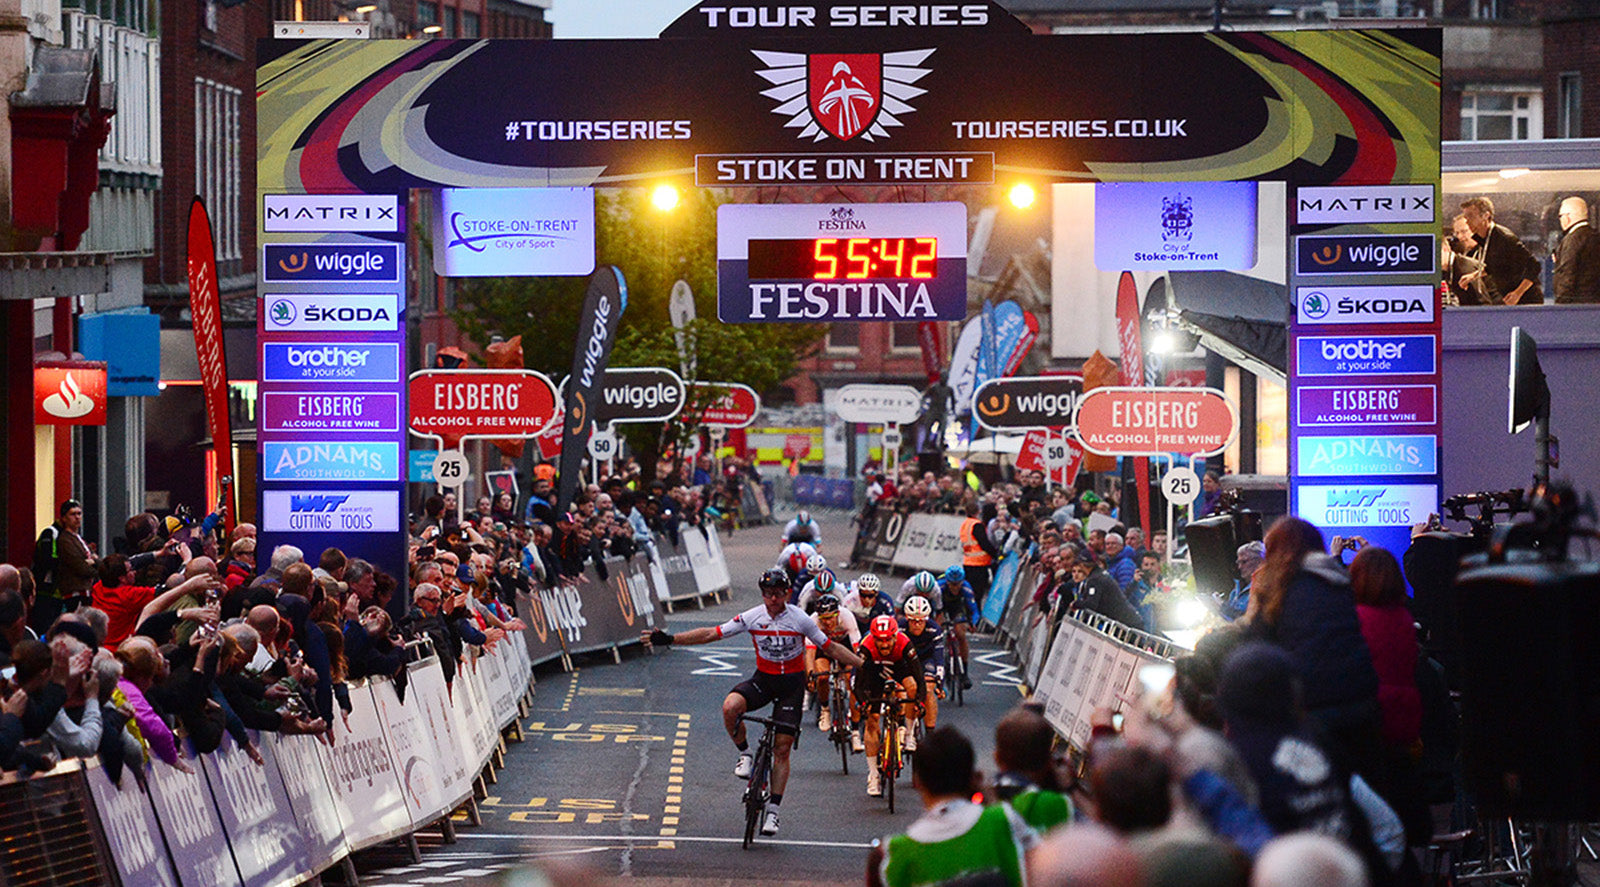 Brenton Jones win Tour Series in Stoke on Trent